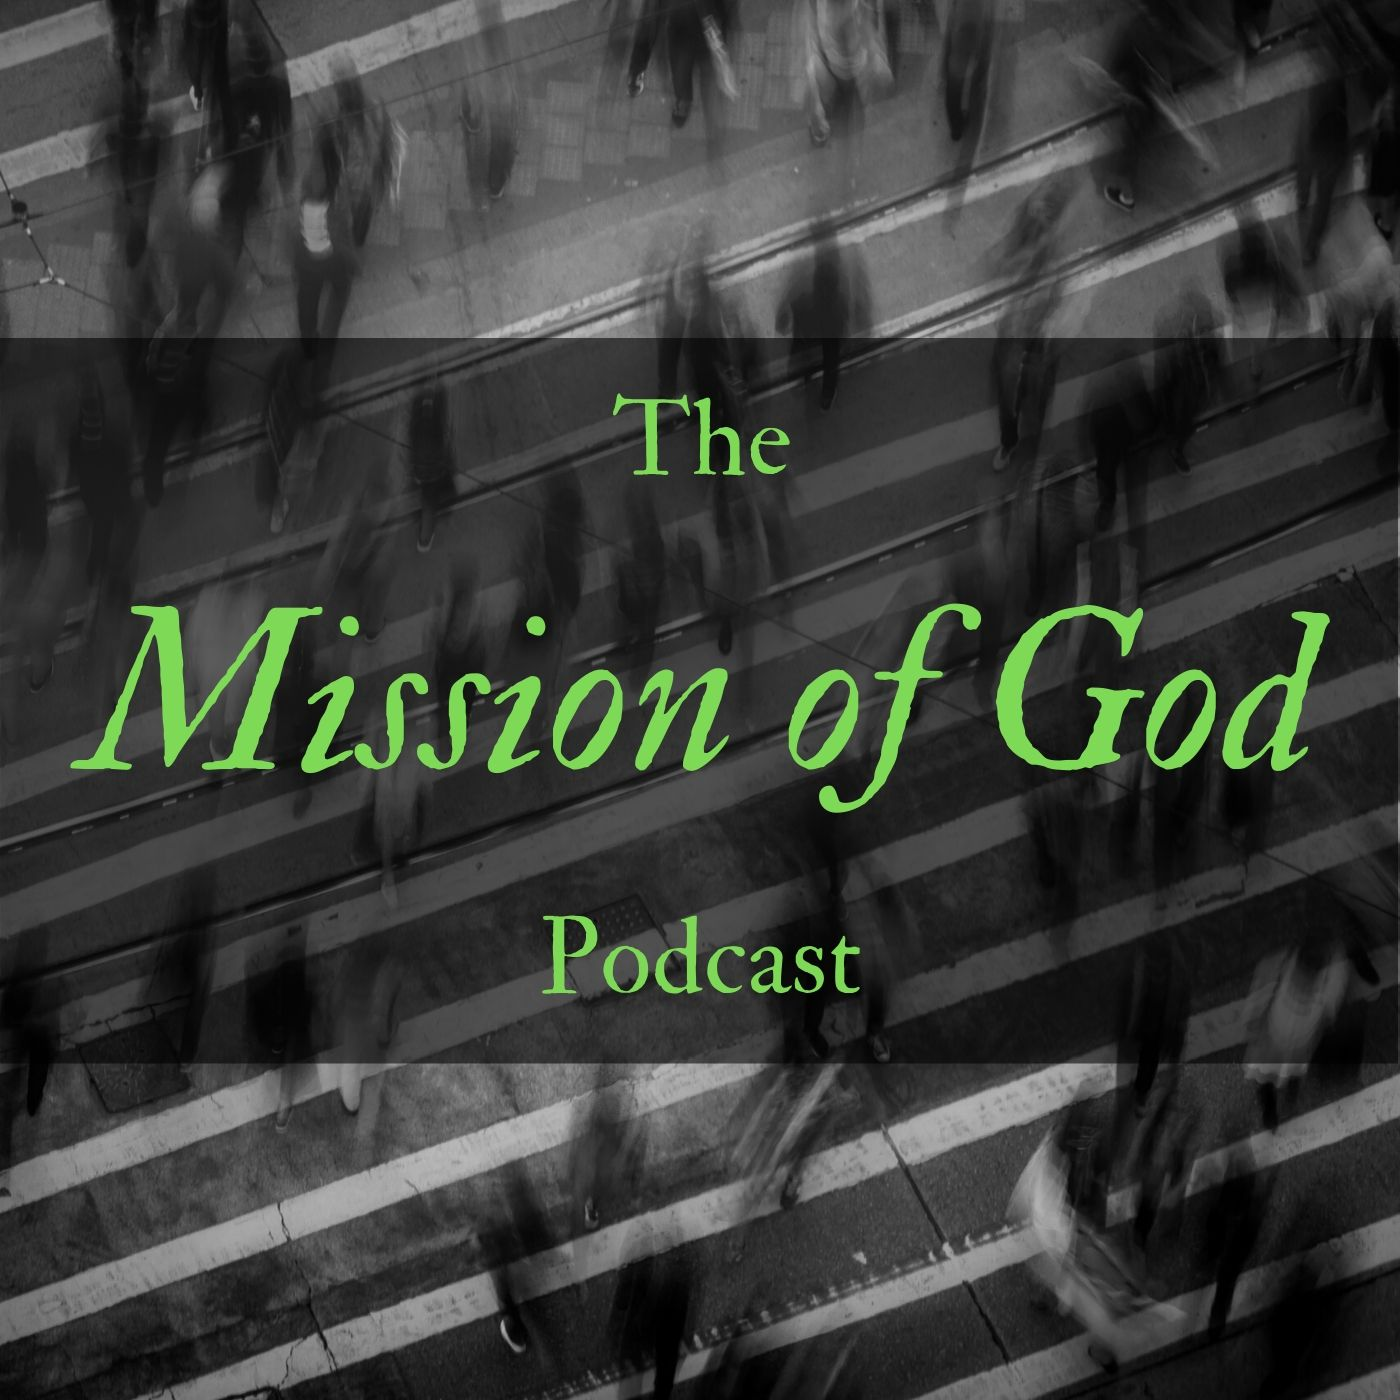 The Mission of God Podcast